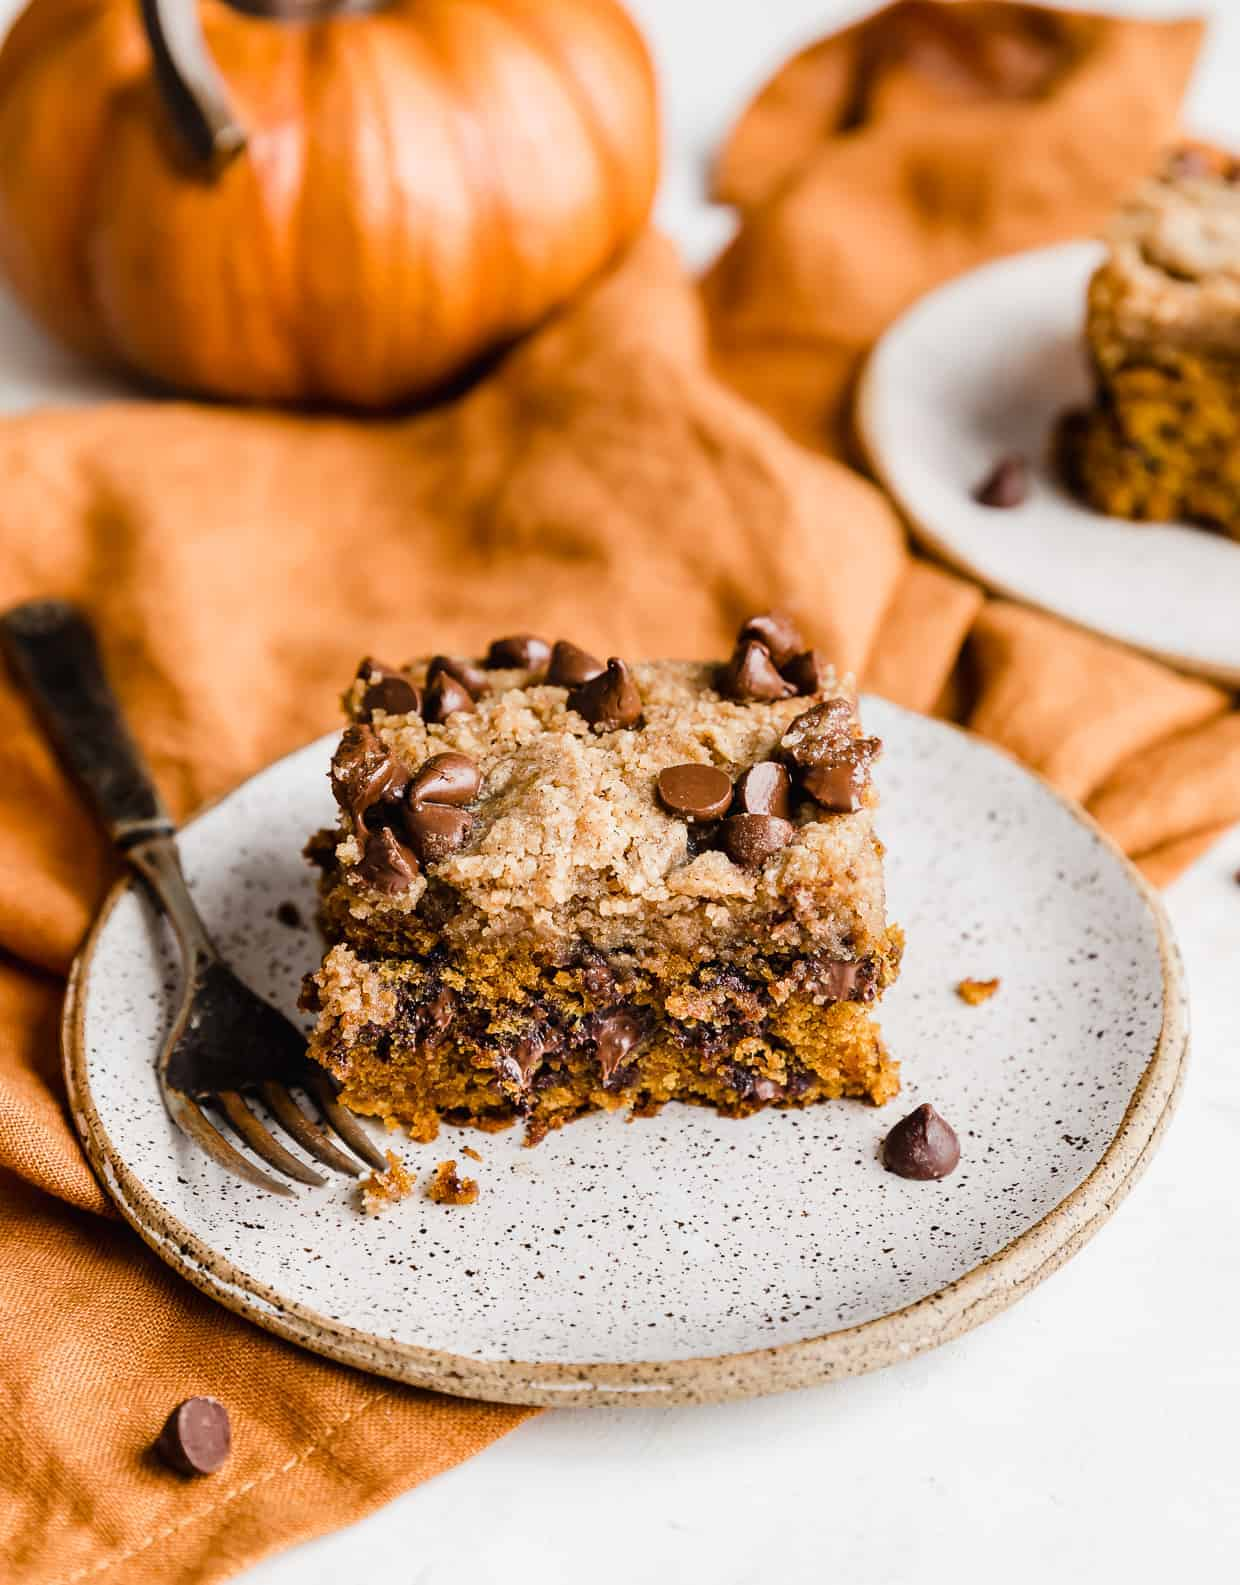 A slice of Pumpkin Chocolate Chip Coffee Cake on a white plate.